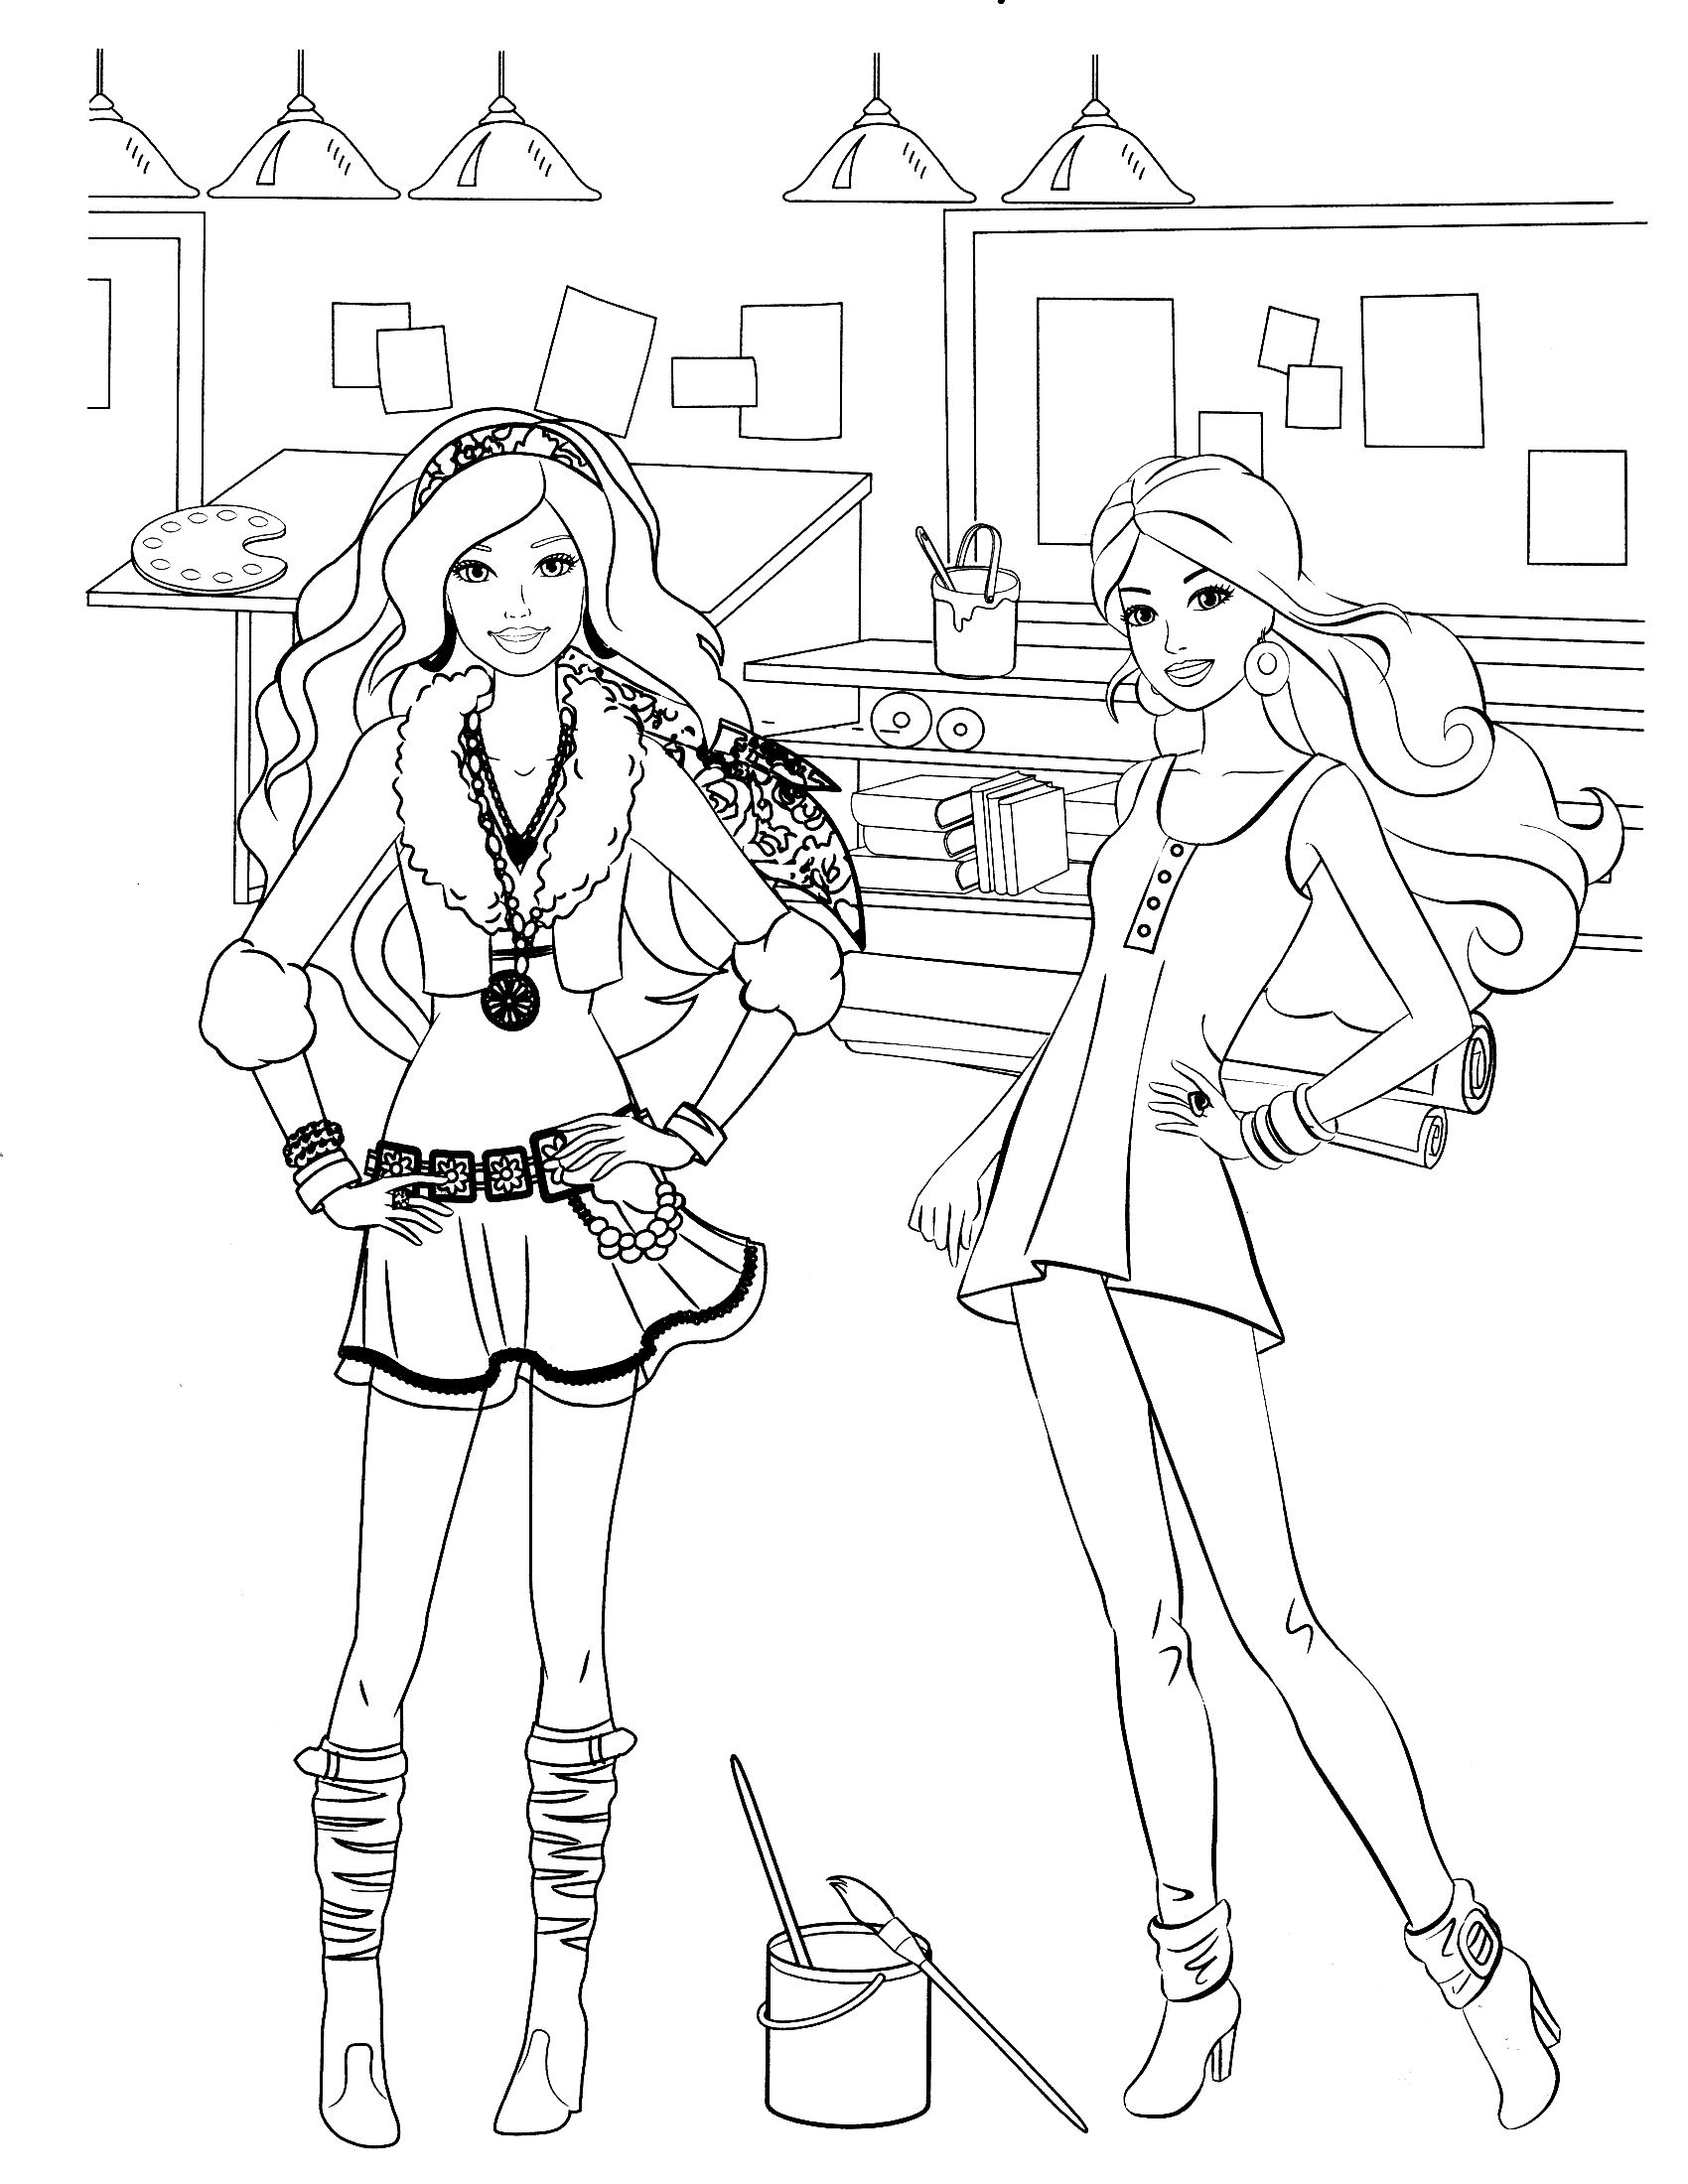 Barbie 86 Barbie Coloring Pages Barbie Coloring Cute Coloring Pages